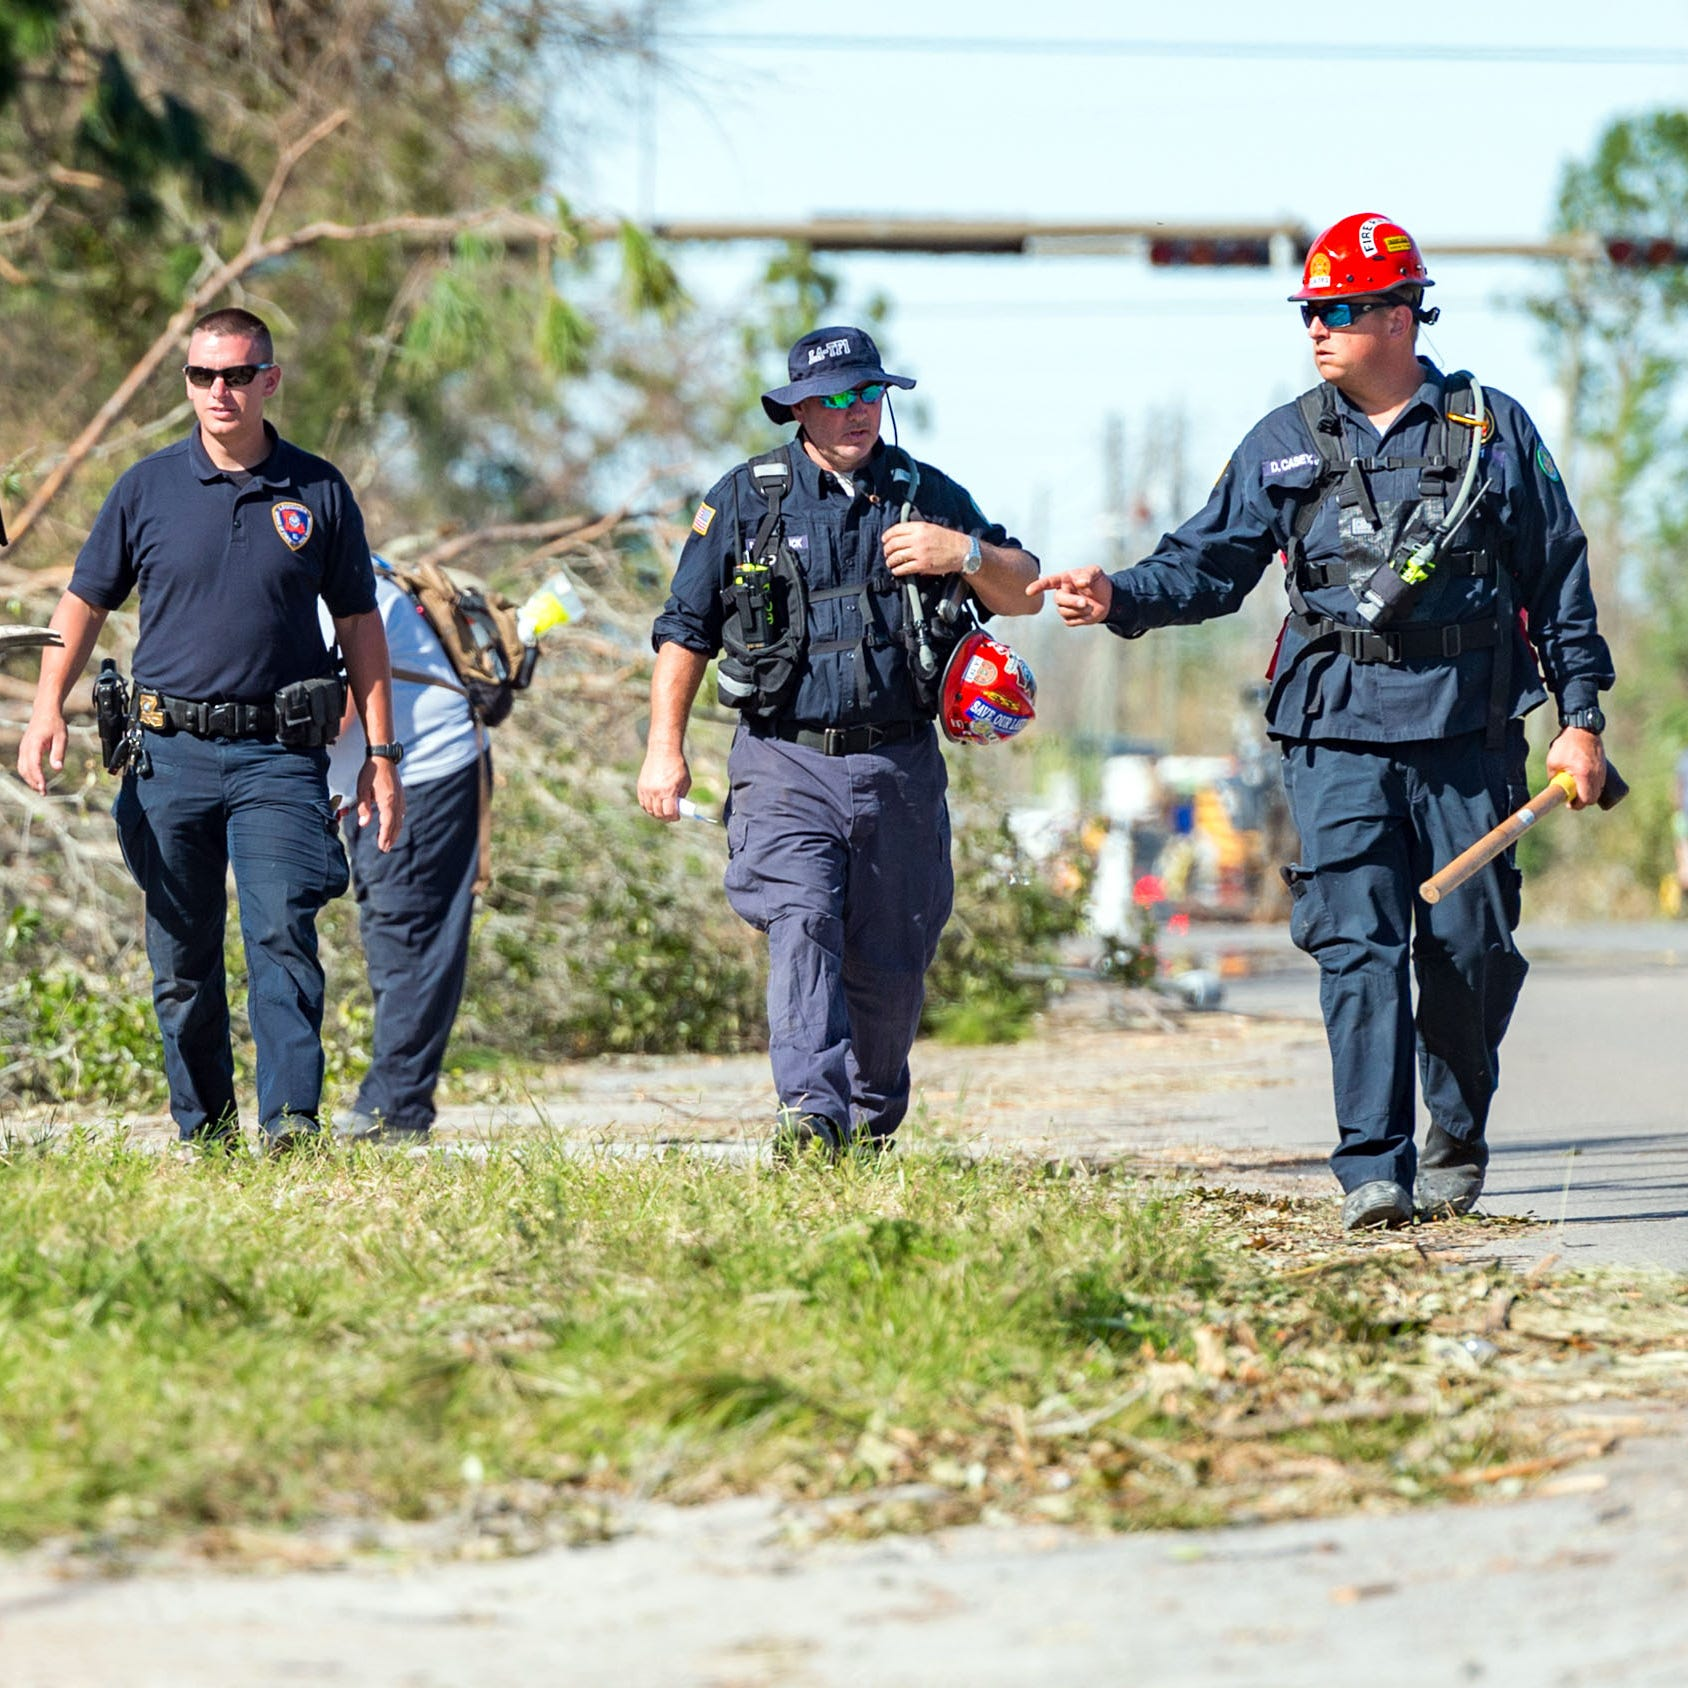 Firefighters from Jefferson Parish, La., perform search and rescue in neighborhoods around Panama City, Fla., Friday, Oct. 12, 2018.